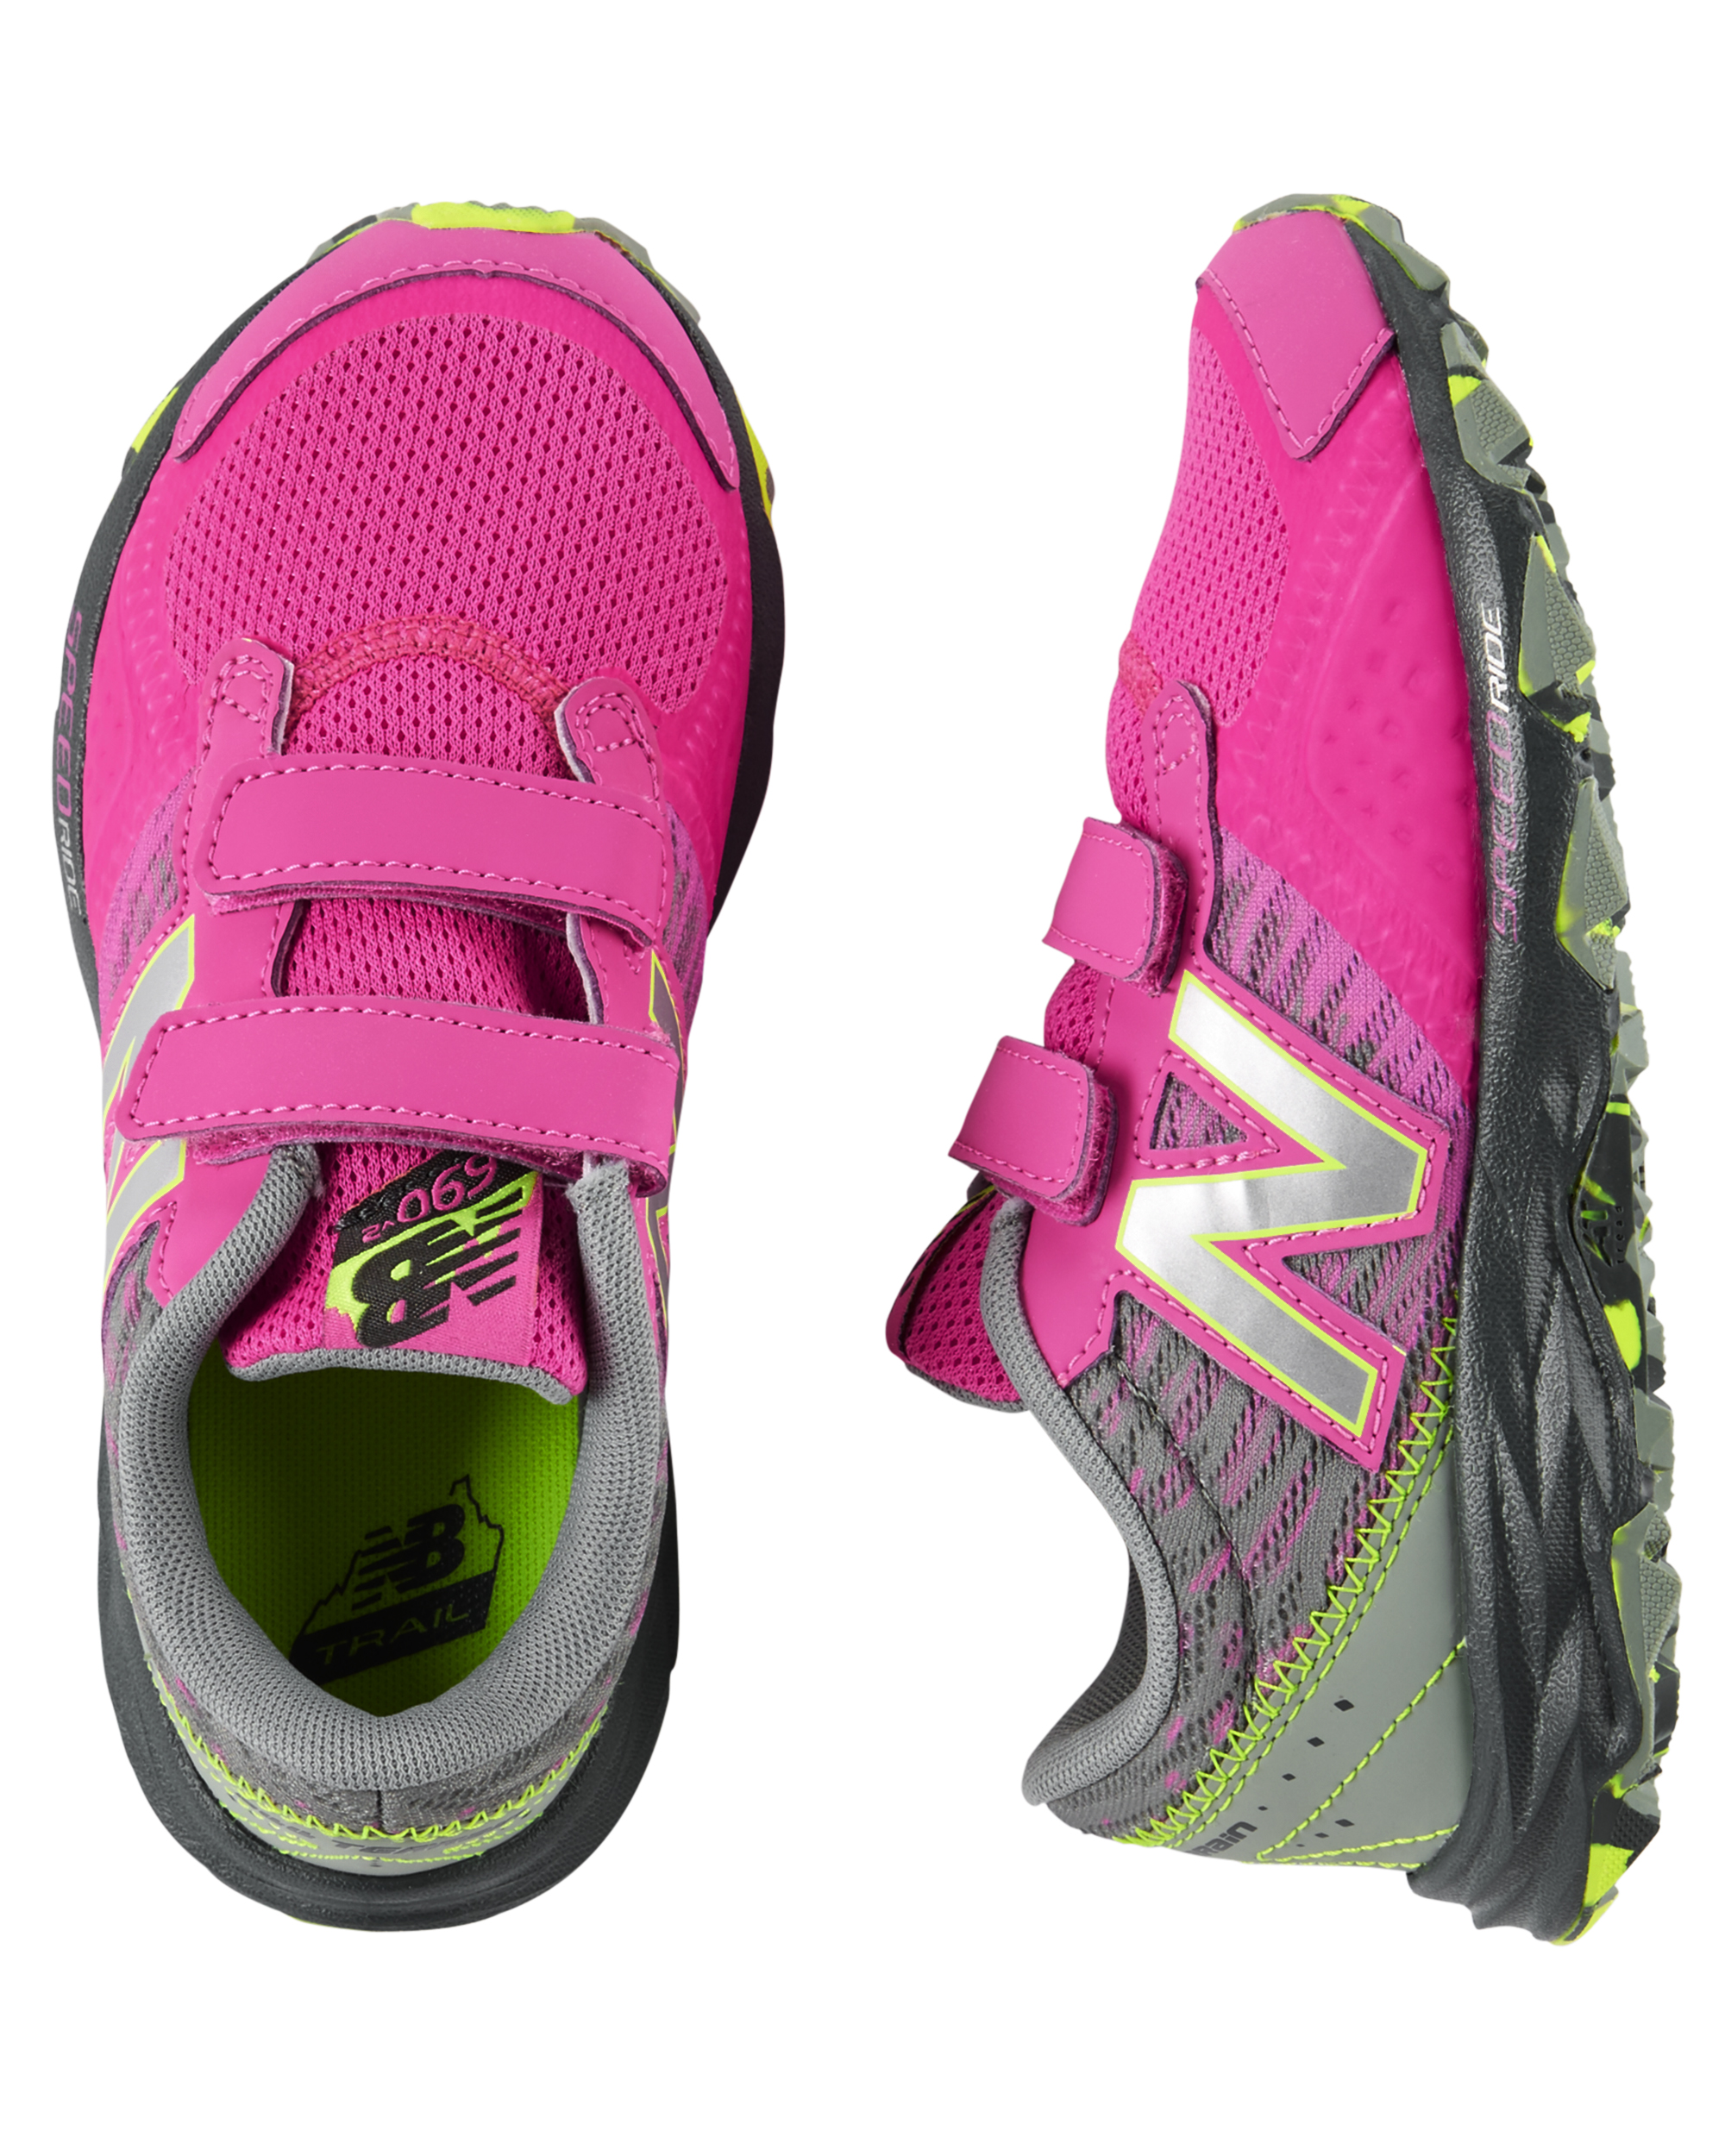 New Balance Hook and Loop 690v2 Trail Sneakers |